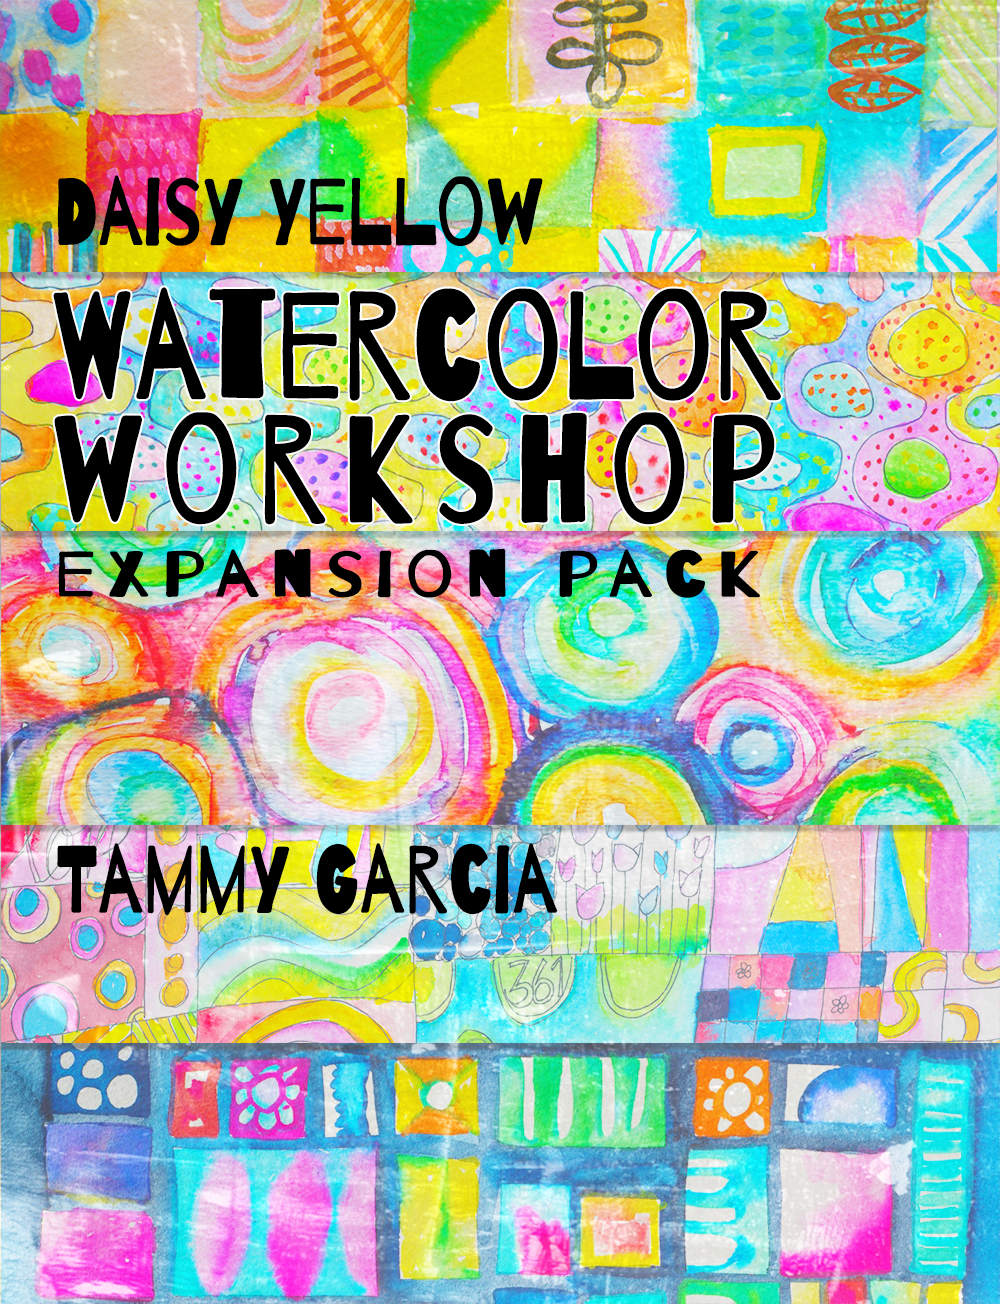 Introduction to Watercolor Workshop